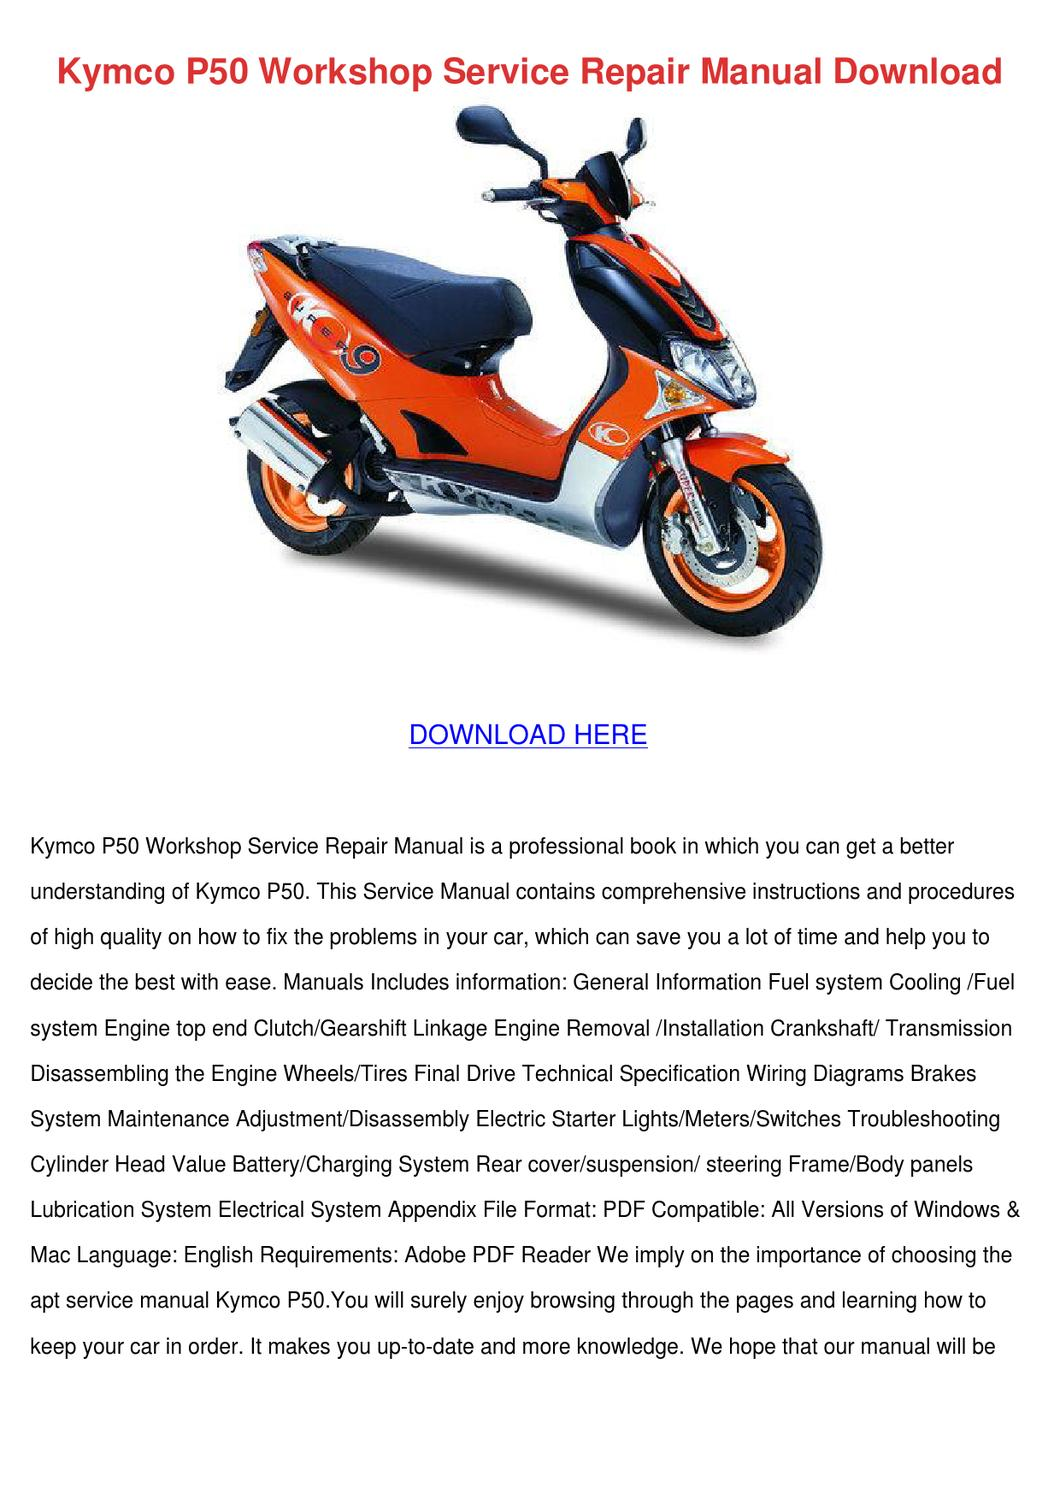 Kymco P50 Workshop Service Repair Manual Down By Princesspeters Issuu Engine Diagram